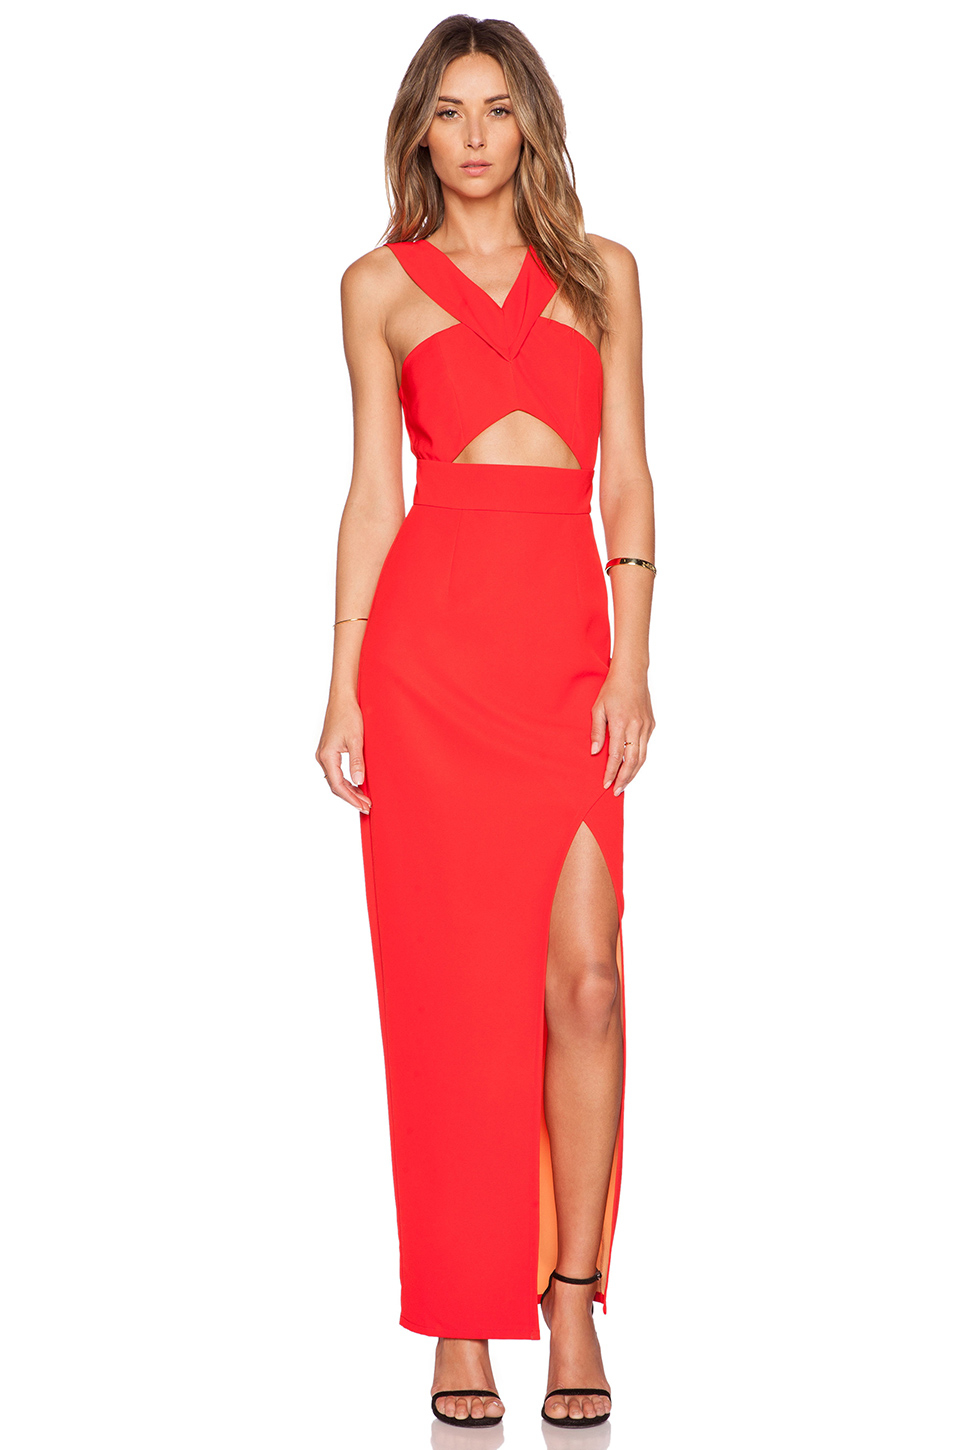 Lumier Flamboyant Flame Maxi Dress in Red | Lyst